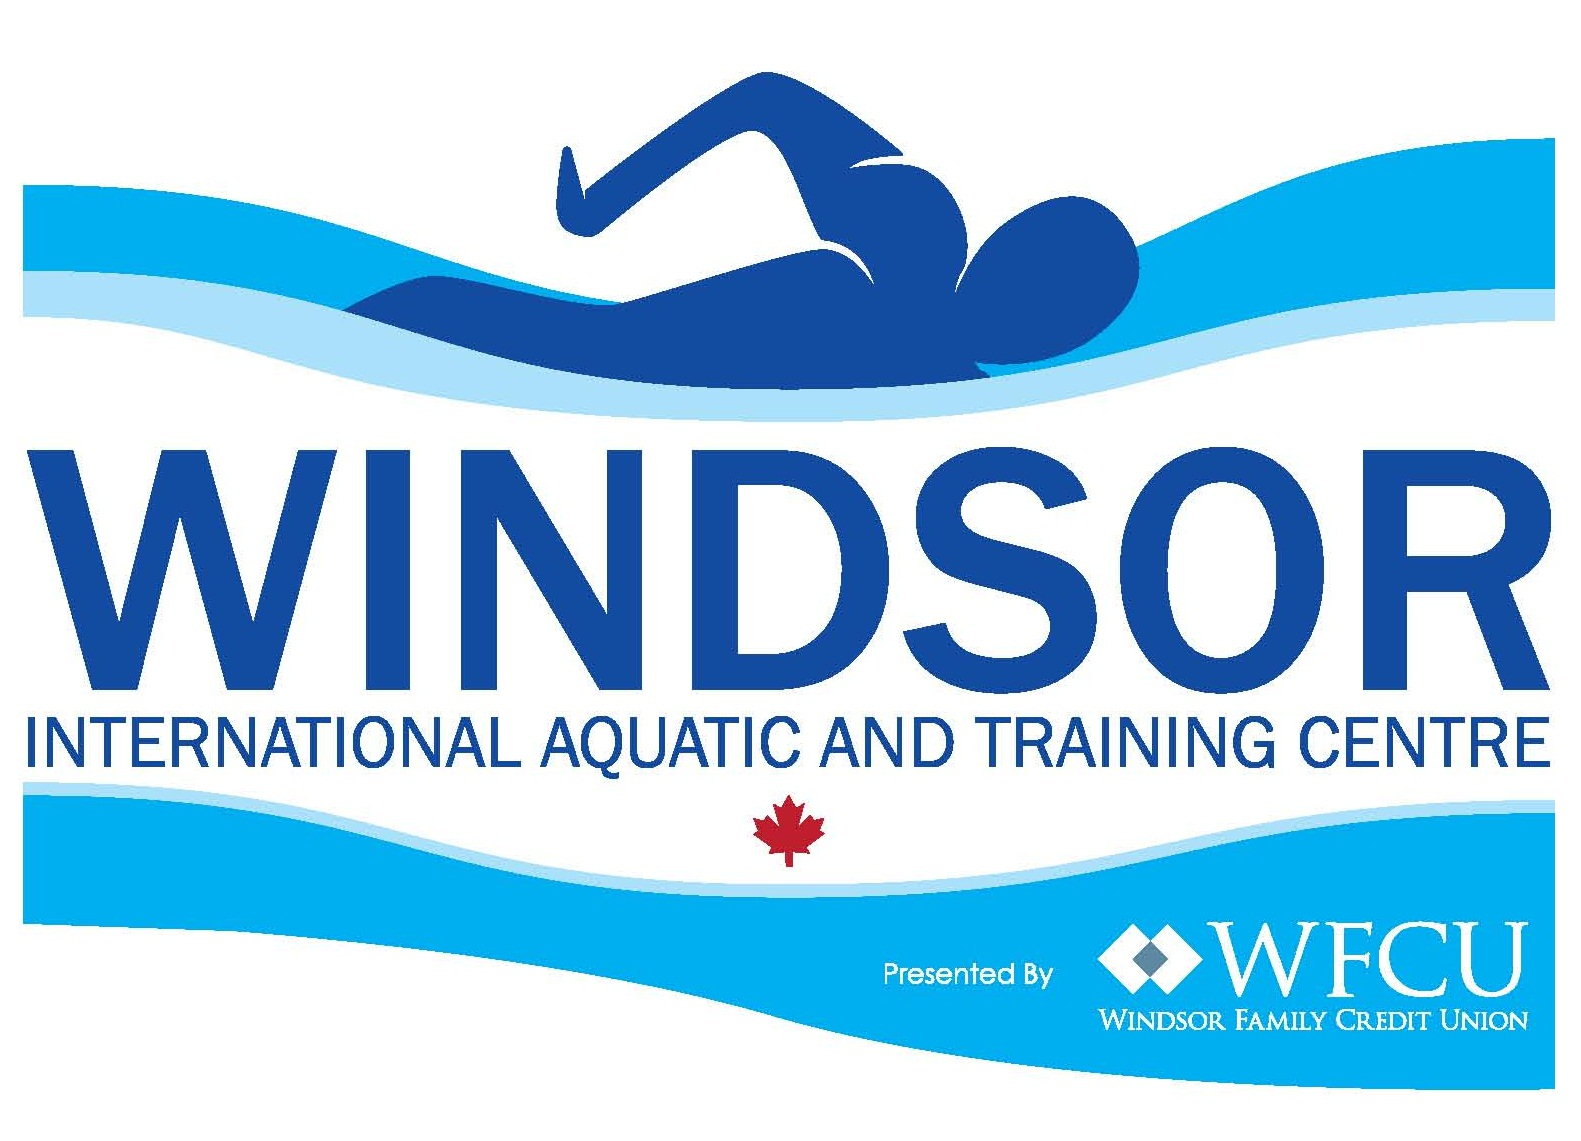 Windsor International Aquatic and Training Centre